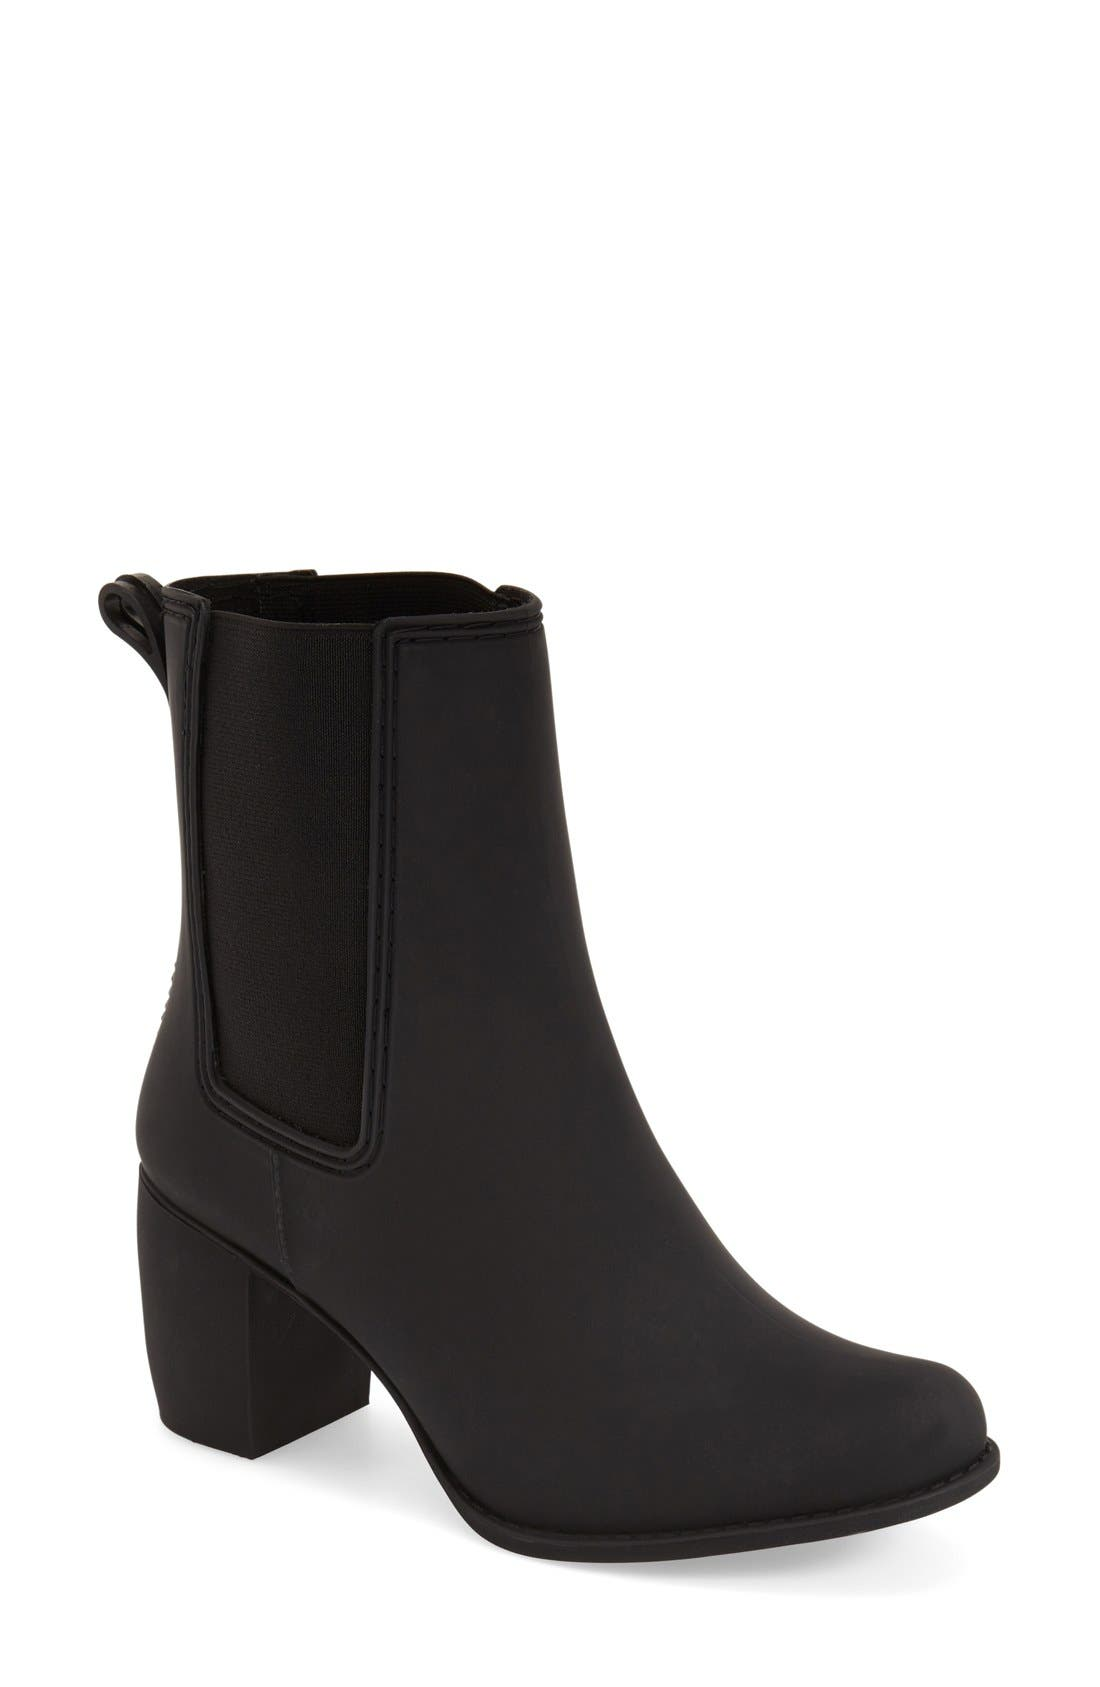 Main Image - Jeffrey Campbell 'Clima' Chelsea Rain Boot (Women)